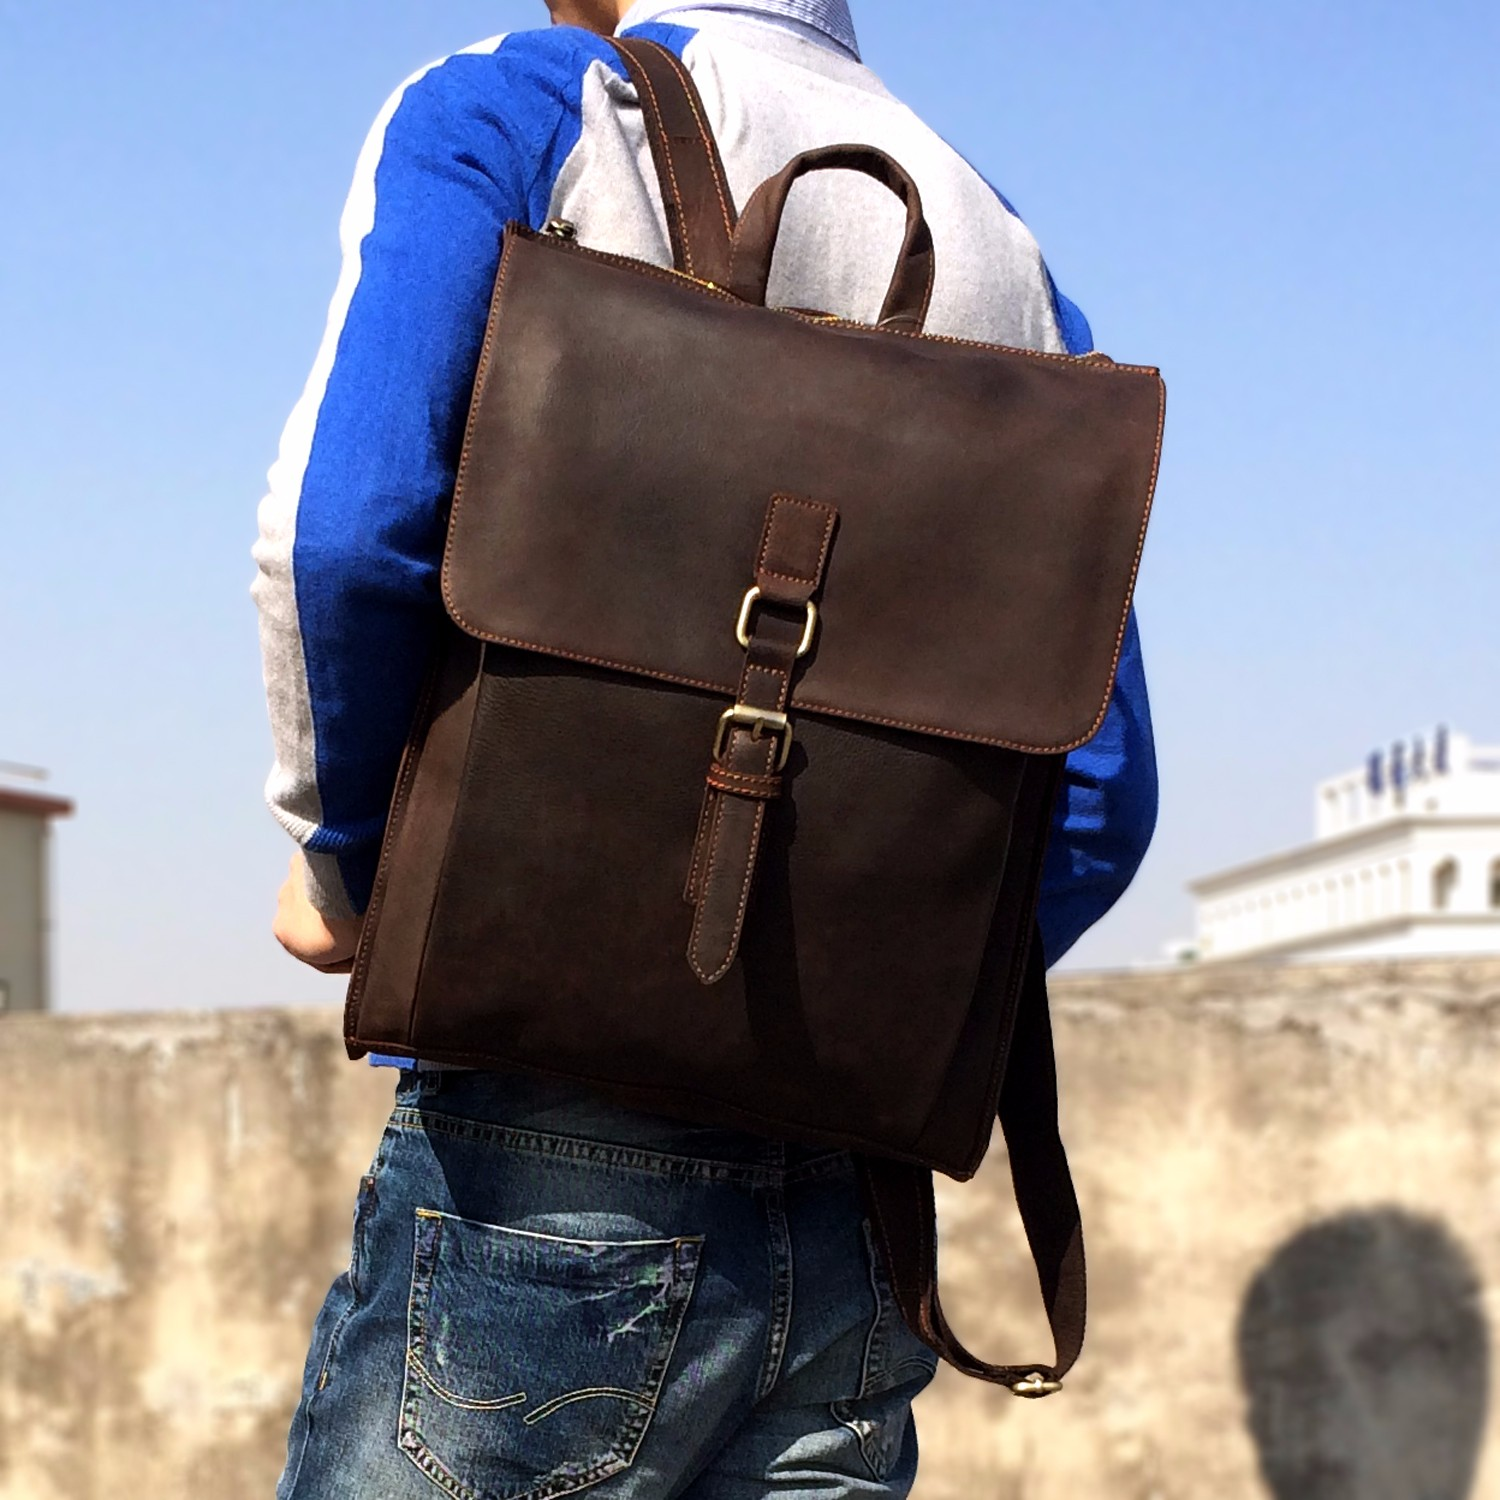 Men Backpack Simple High Quality Leather Backpack Male Leather Fashion Trend Youth Leisure Travel Computer Bag mochila mujer5HMen Backpack Simple High Quality Leather Backpack Male Leather Fashion Trend Youth Leisure Travel Computer Bag mochila mujer5H